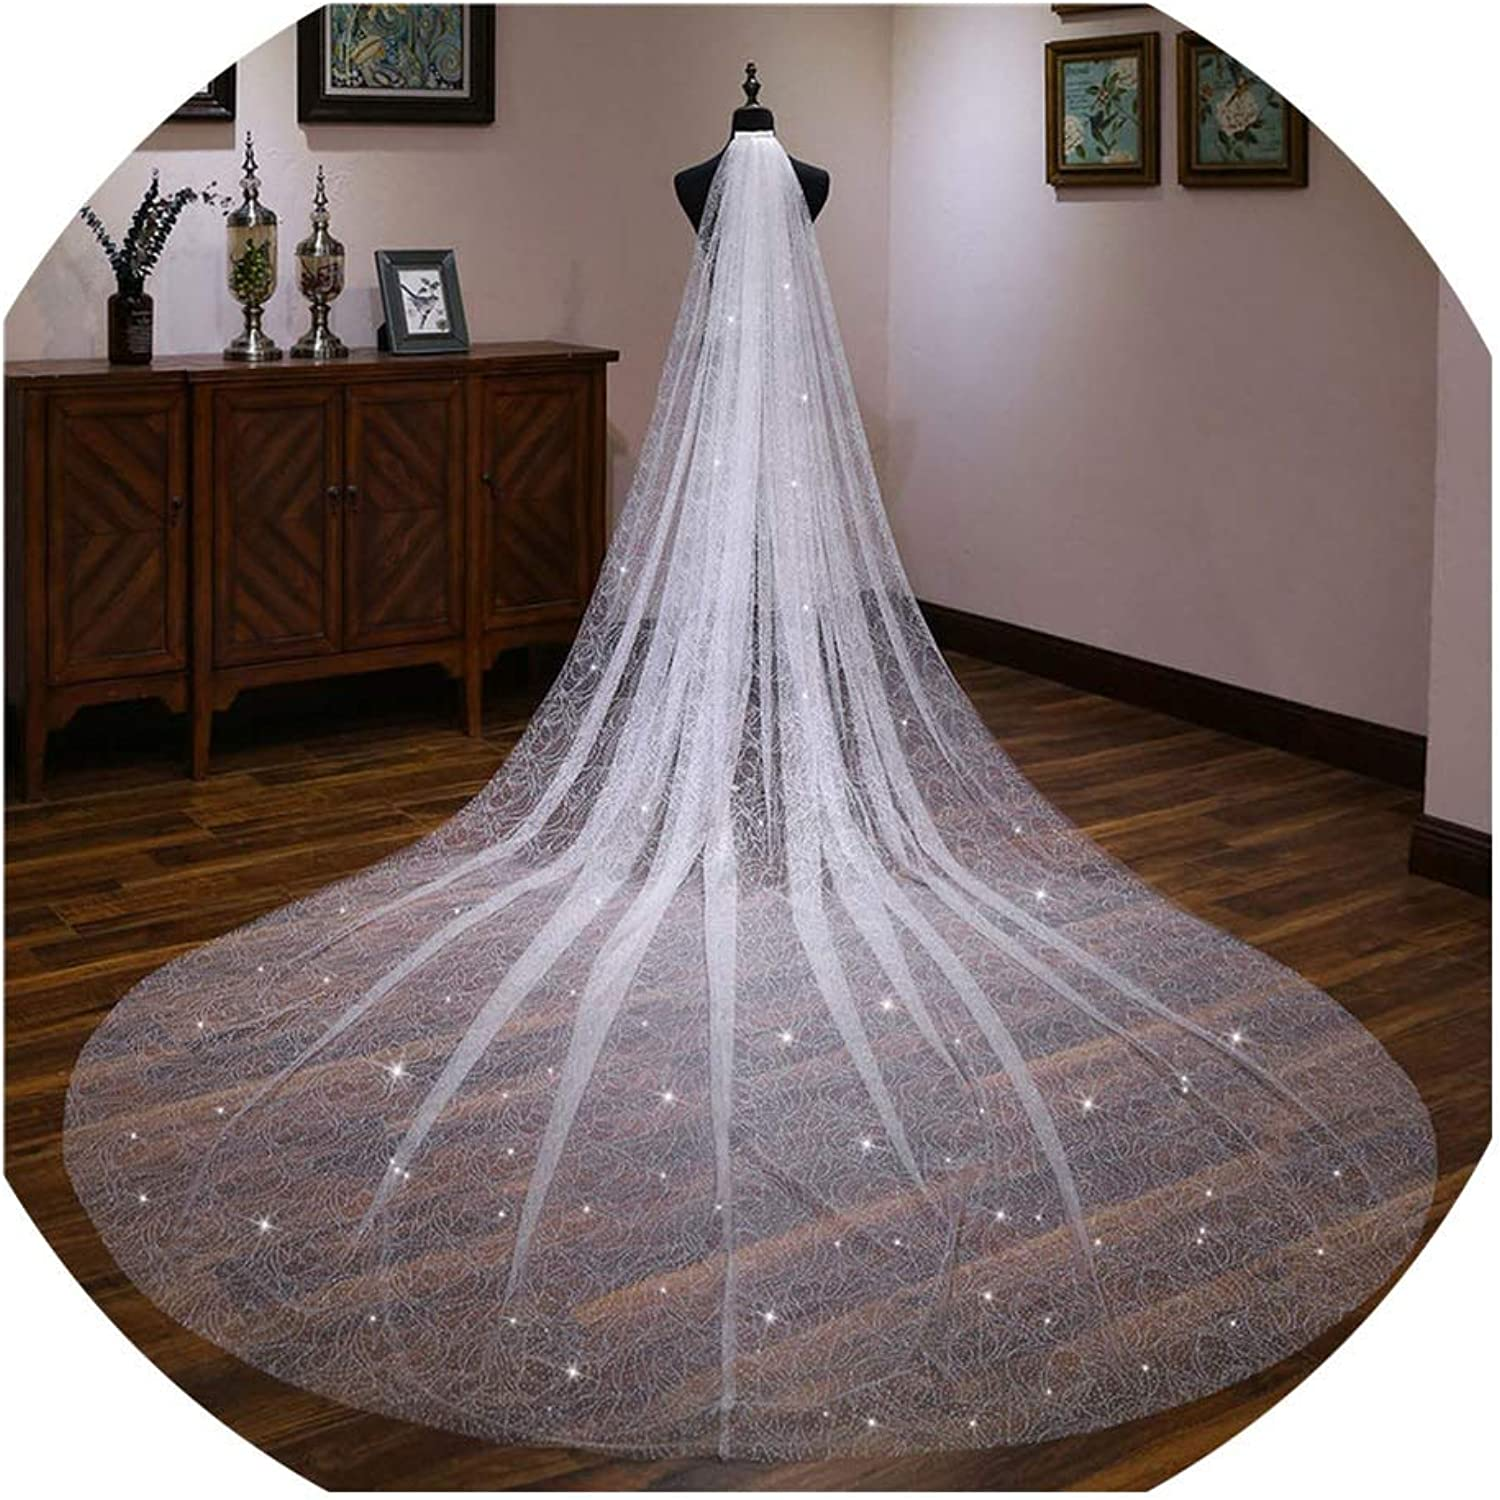 Bling Bling Sequins Long Bridal Veil Cathedral Veil ivory Long Bridal Wedding Accessories Hair Accessories With Comb,Ivory,300cm